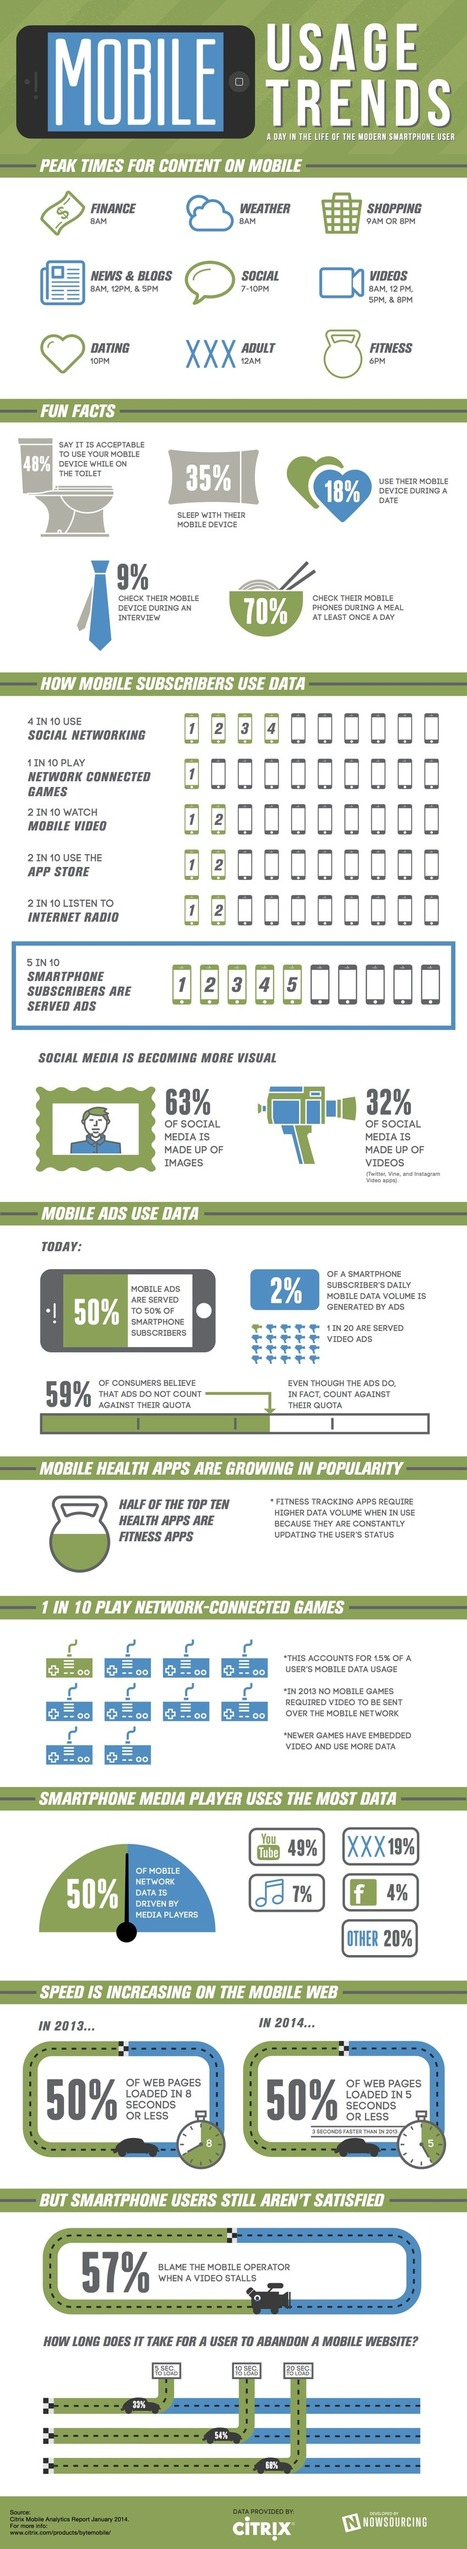 A Day in the Life of the Modern Smartphone User [Infographic] | Online Marketing Resources | Scoop.it